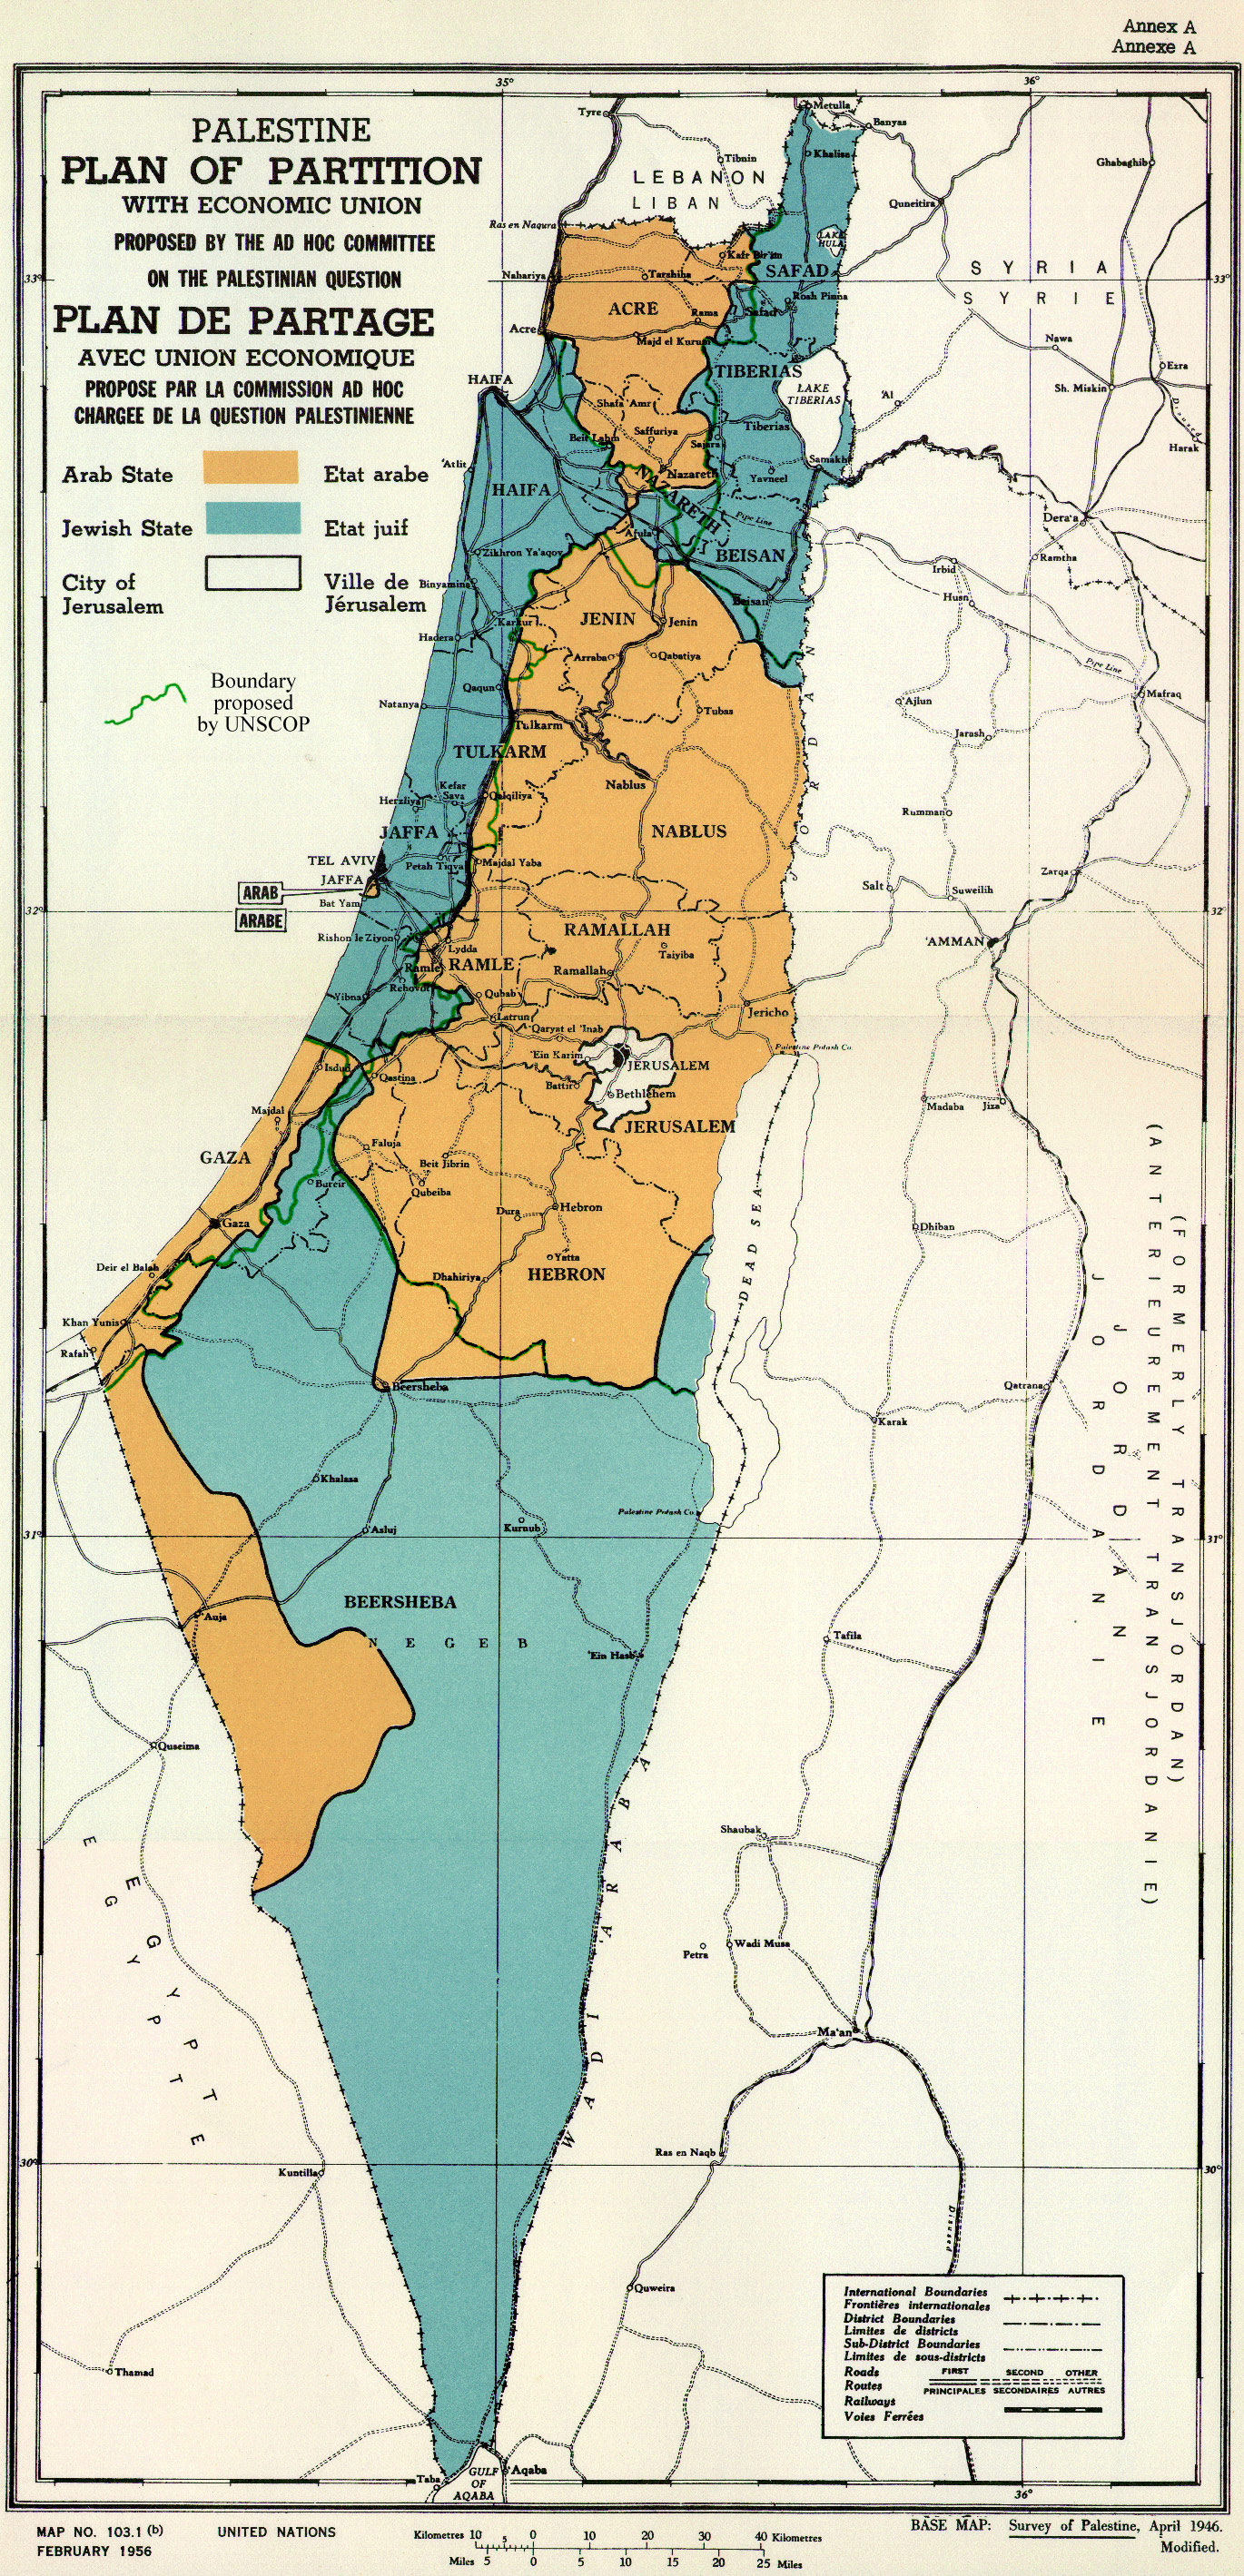 Partition plan for Palestine in 1947